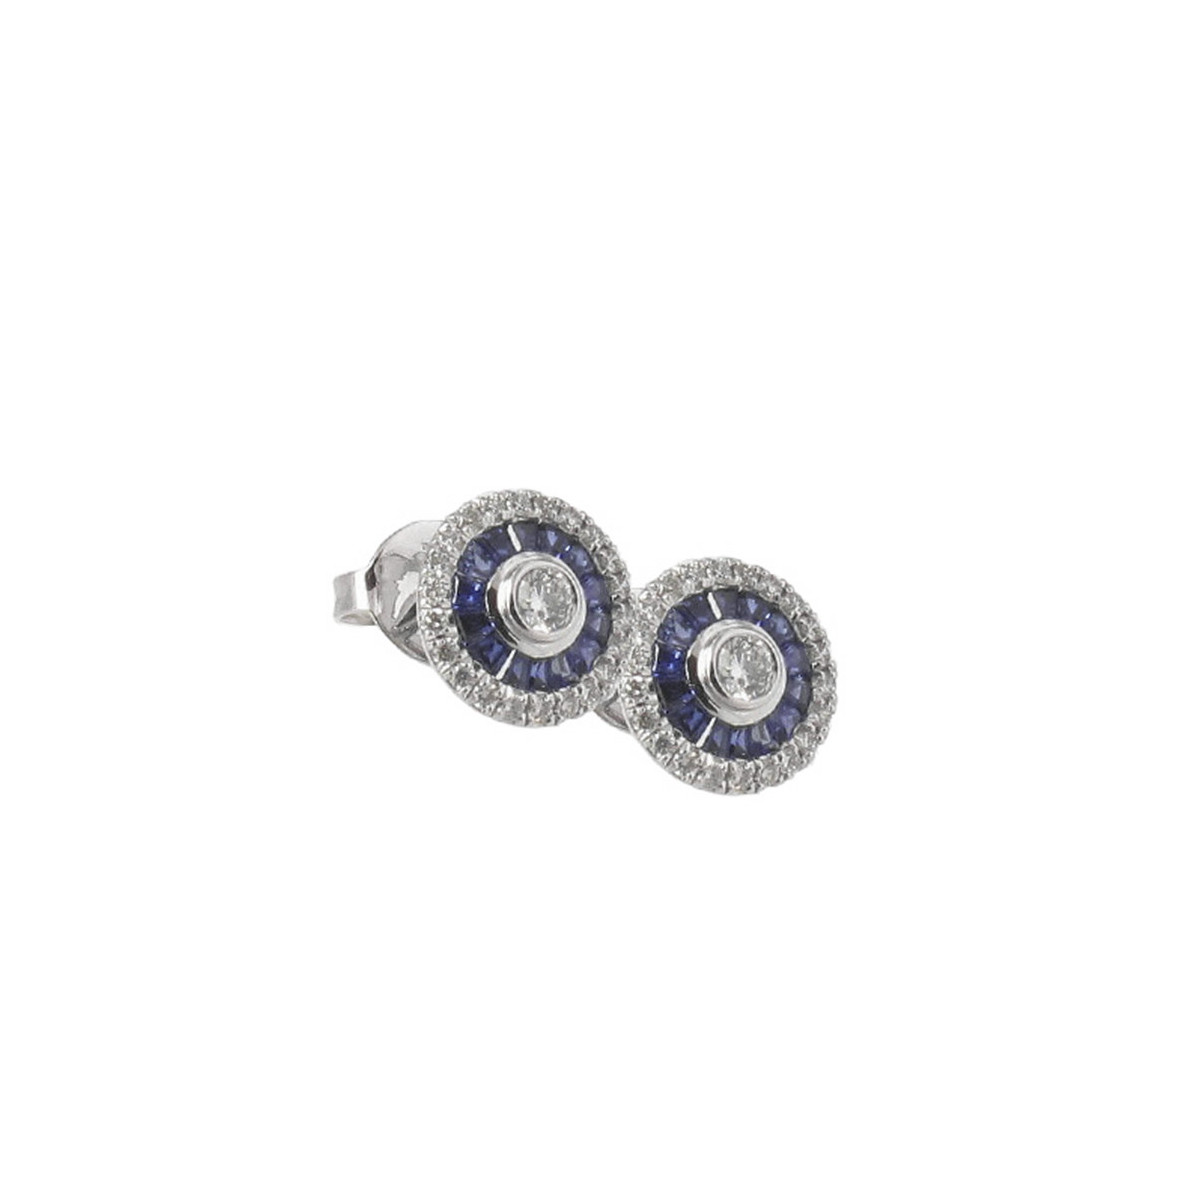 GOLD DIAMONDS AND SAPPHIRES EARRINGS